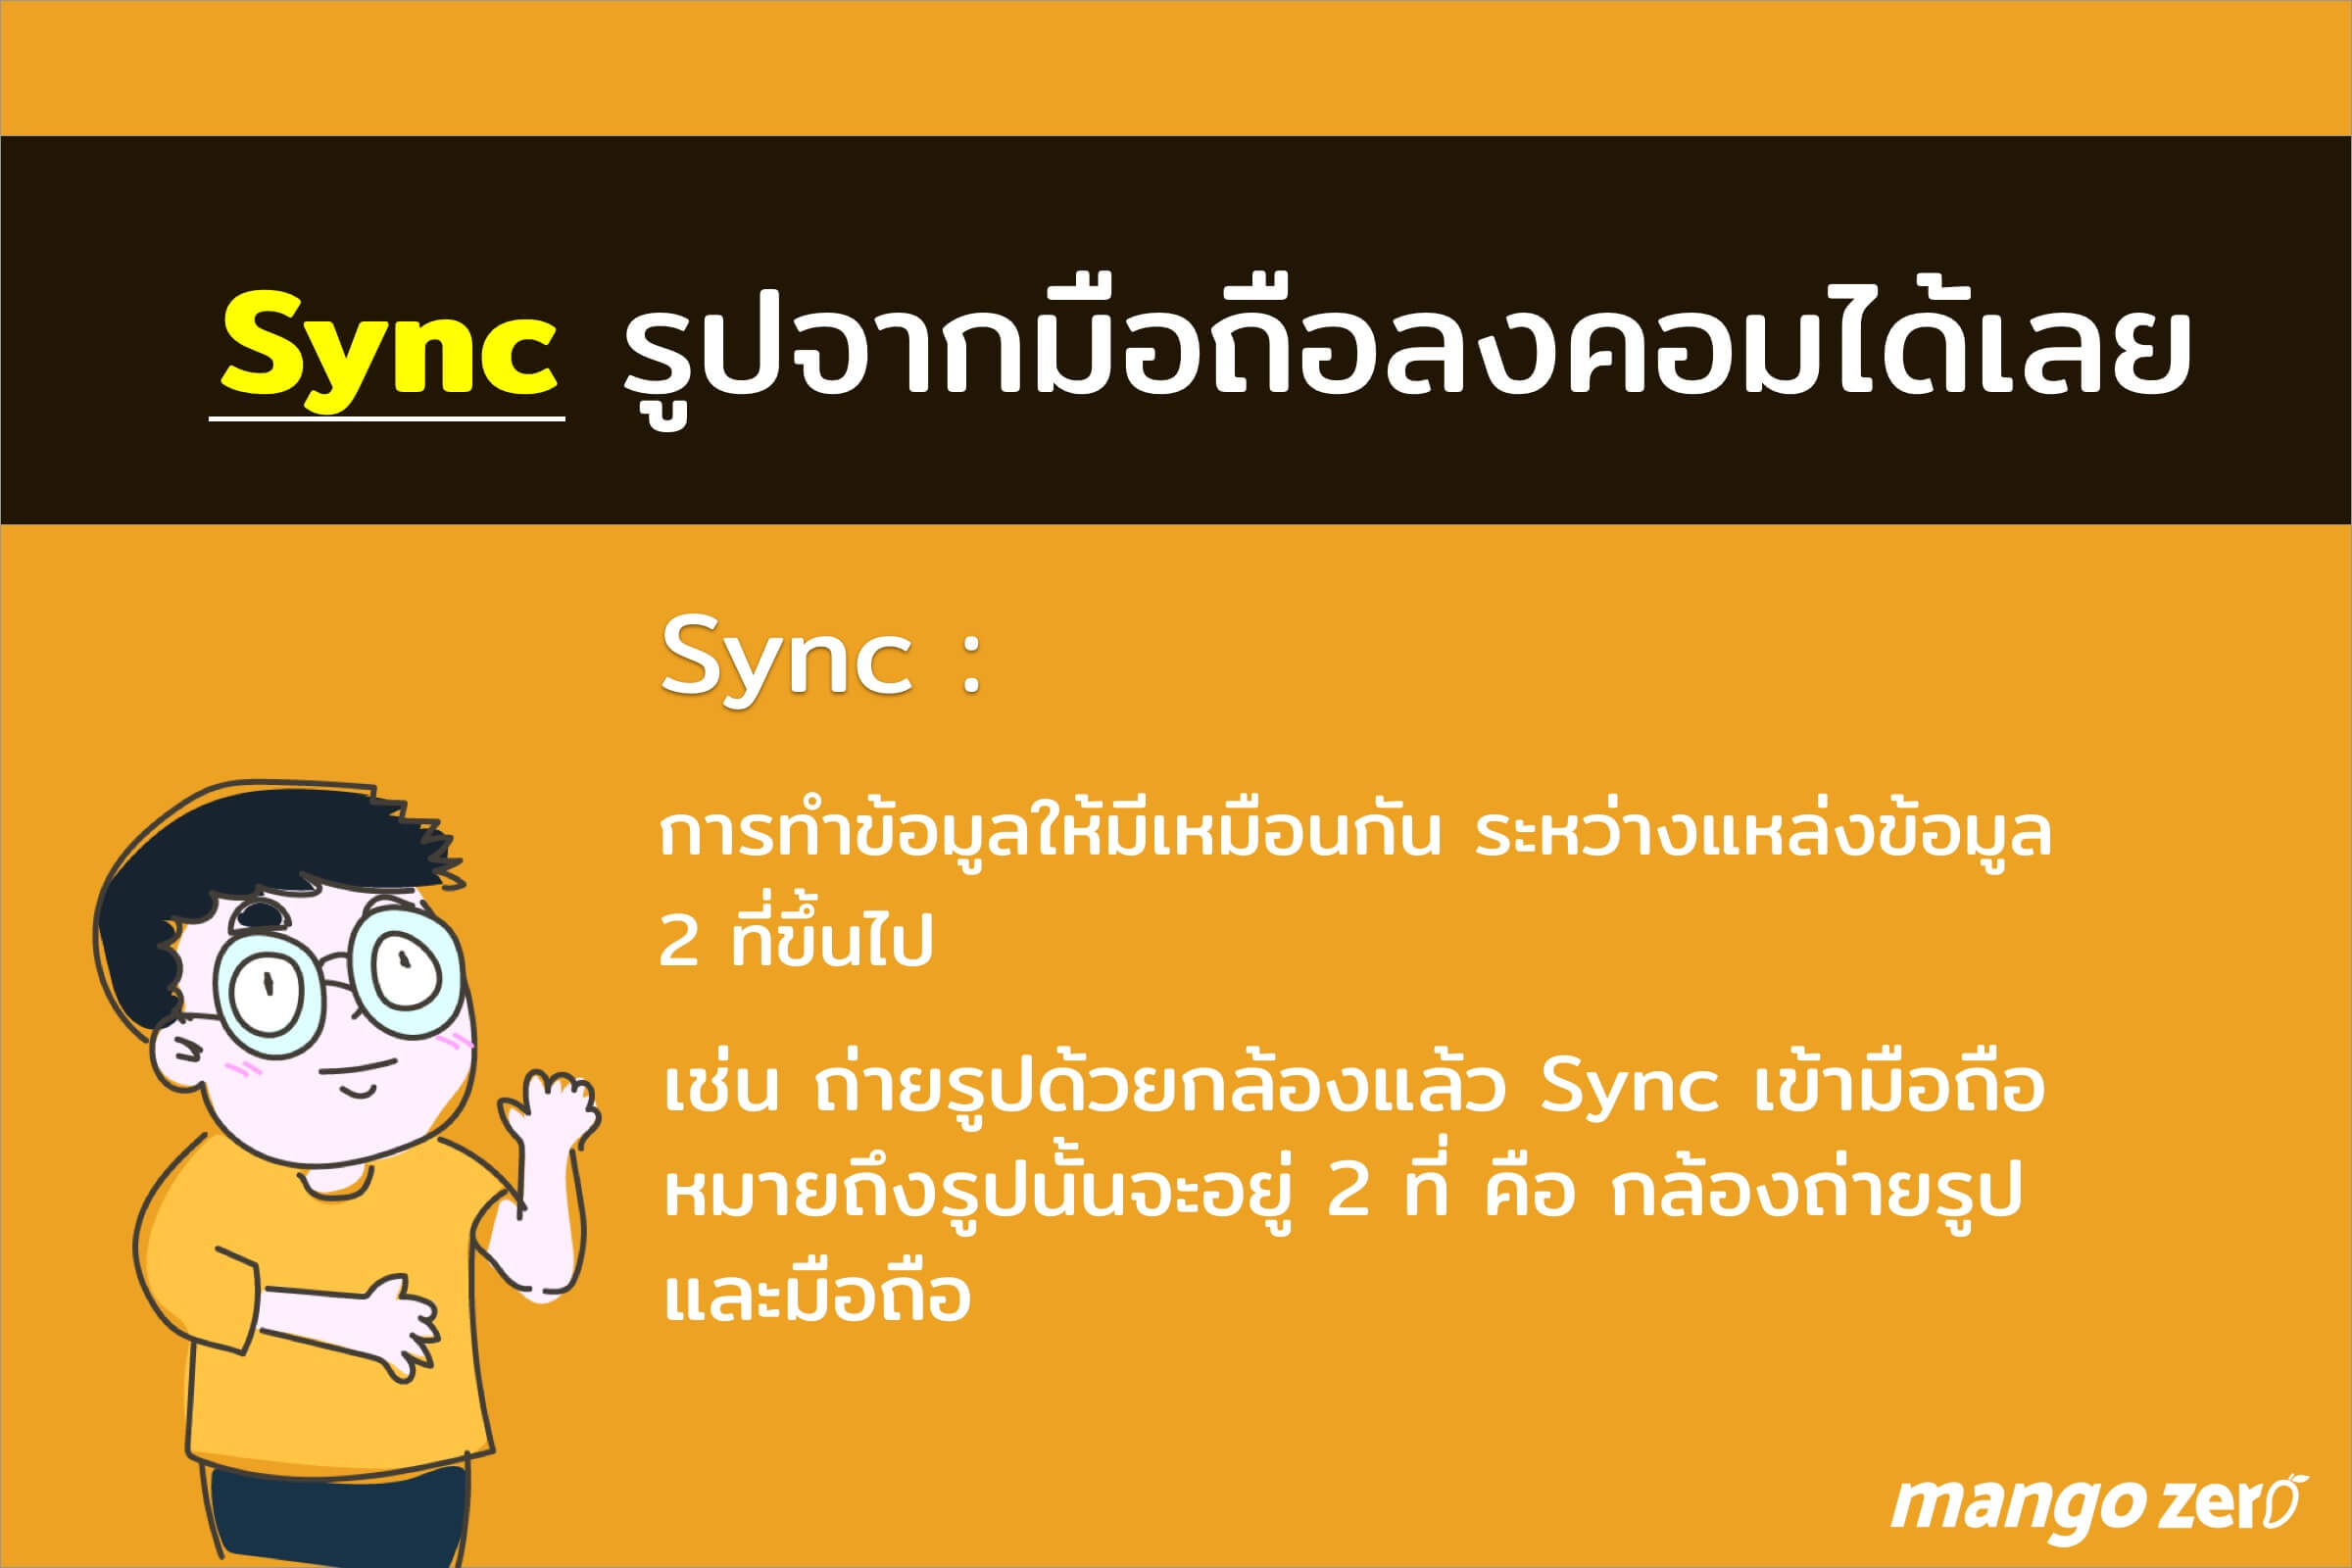 thai-it-dictionary-part-1-7